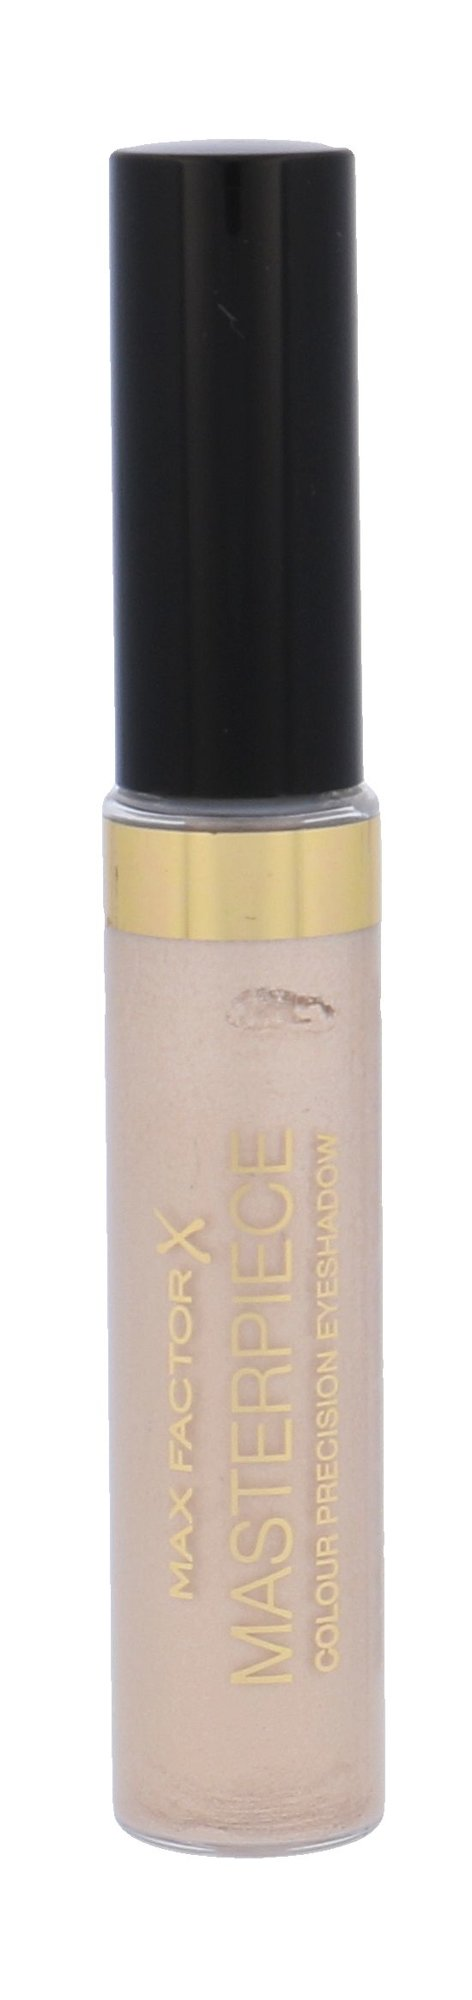 Max Factor Masterpiece Cosmetic 8ml 5 Pearl Beige